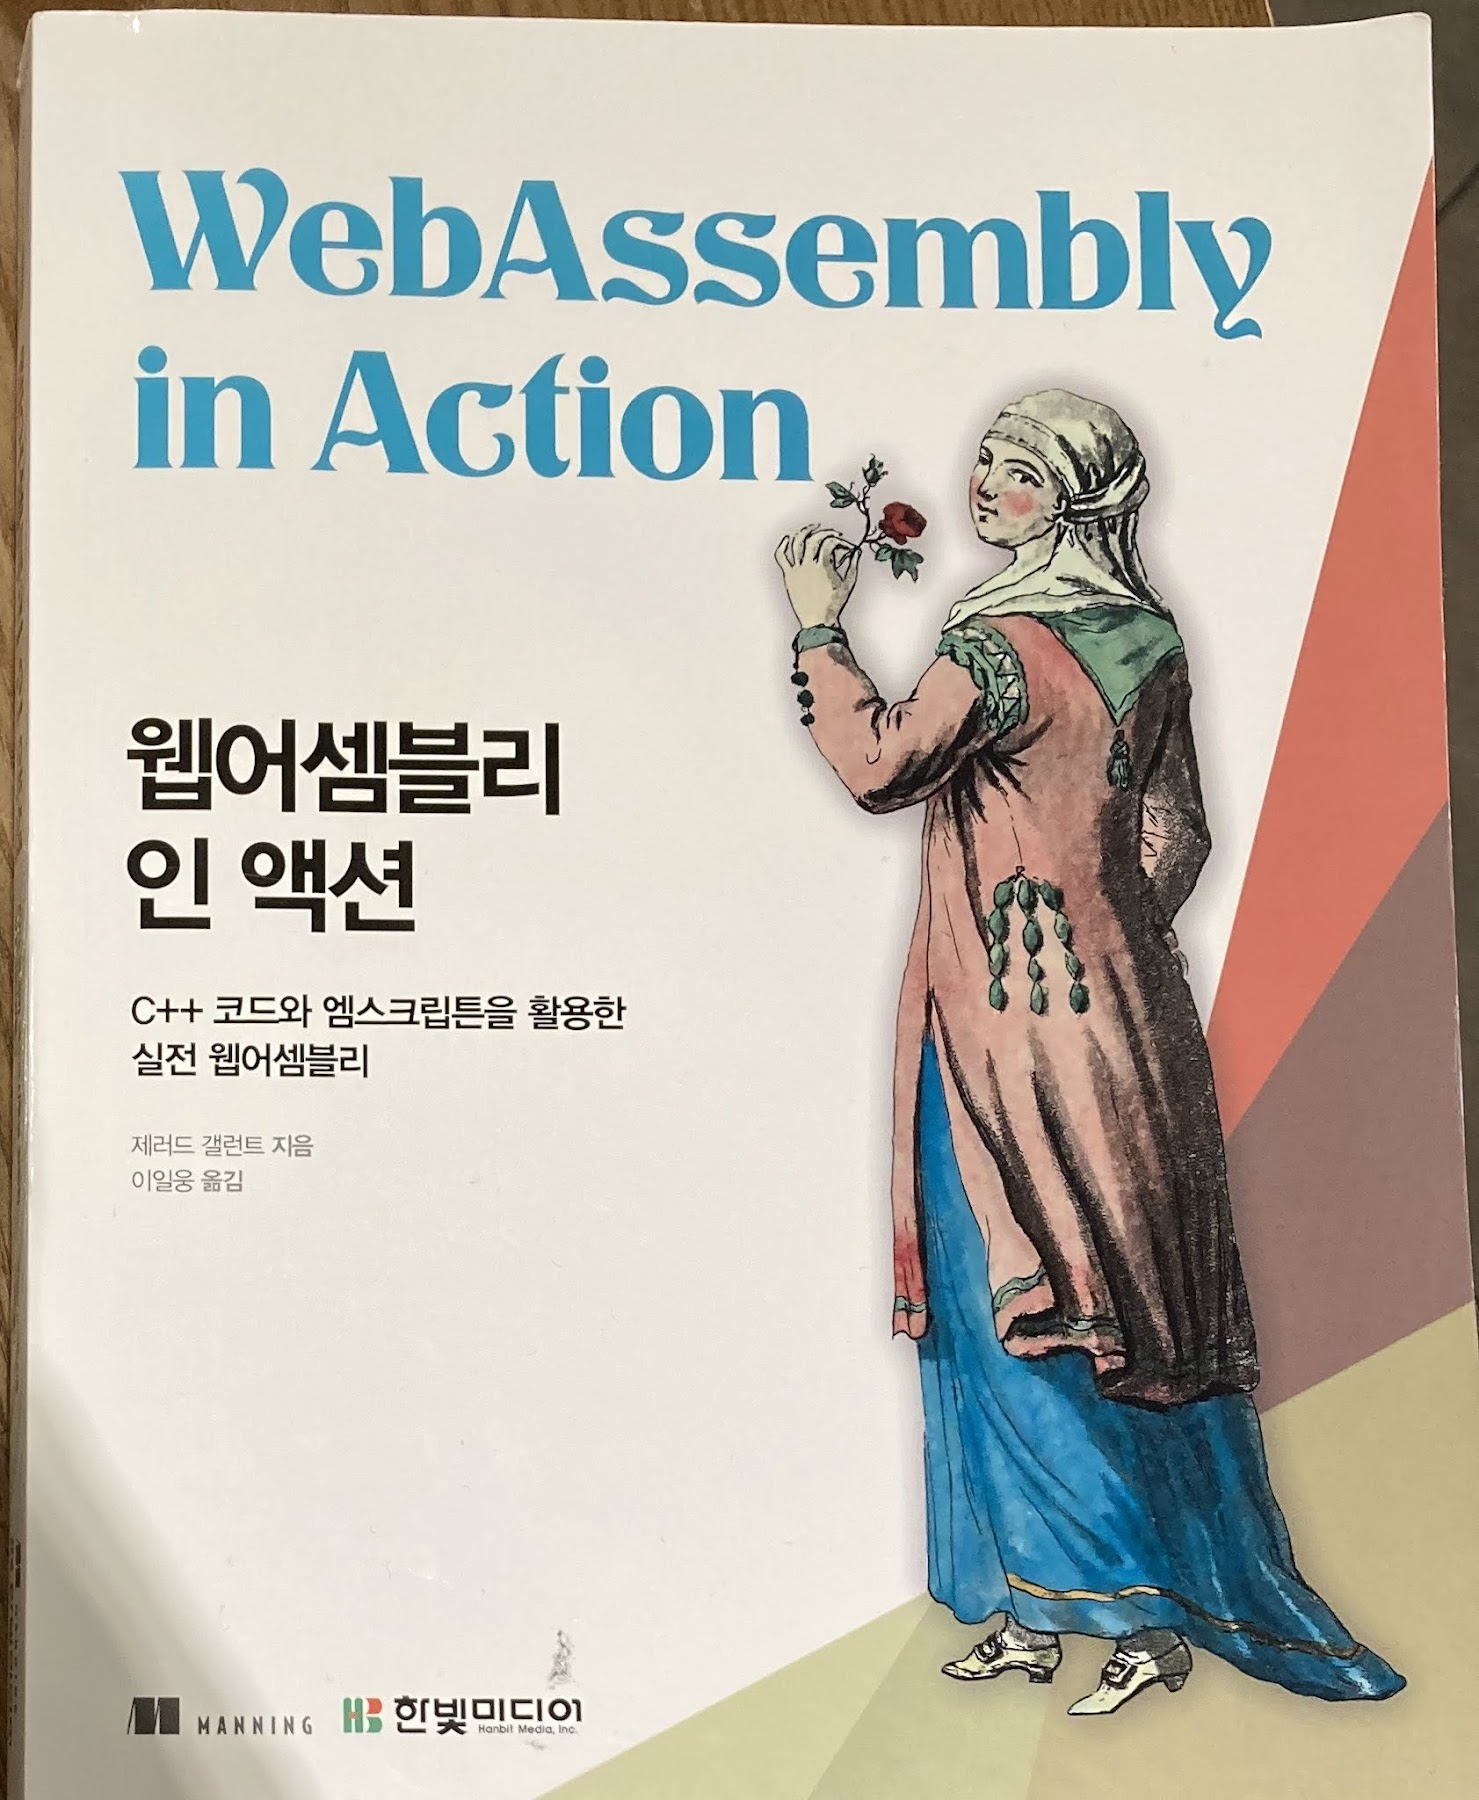 web_assembly_in_action-01